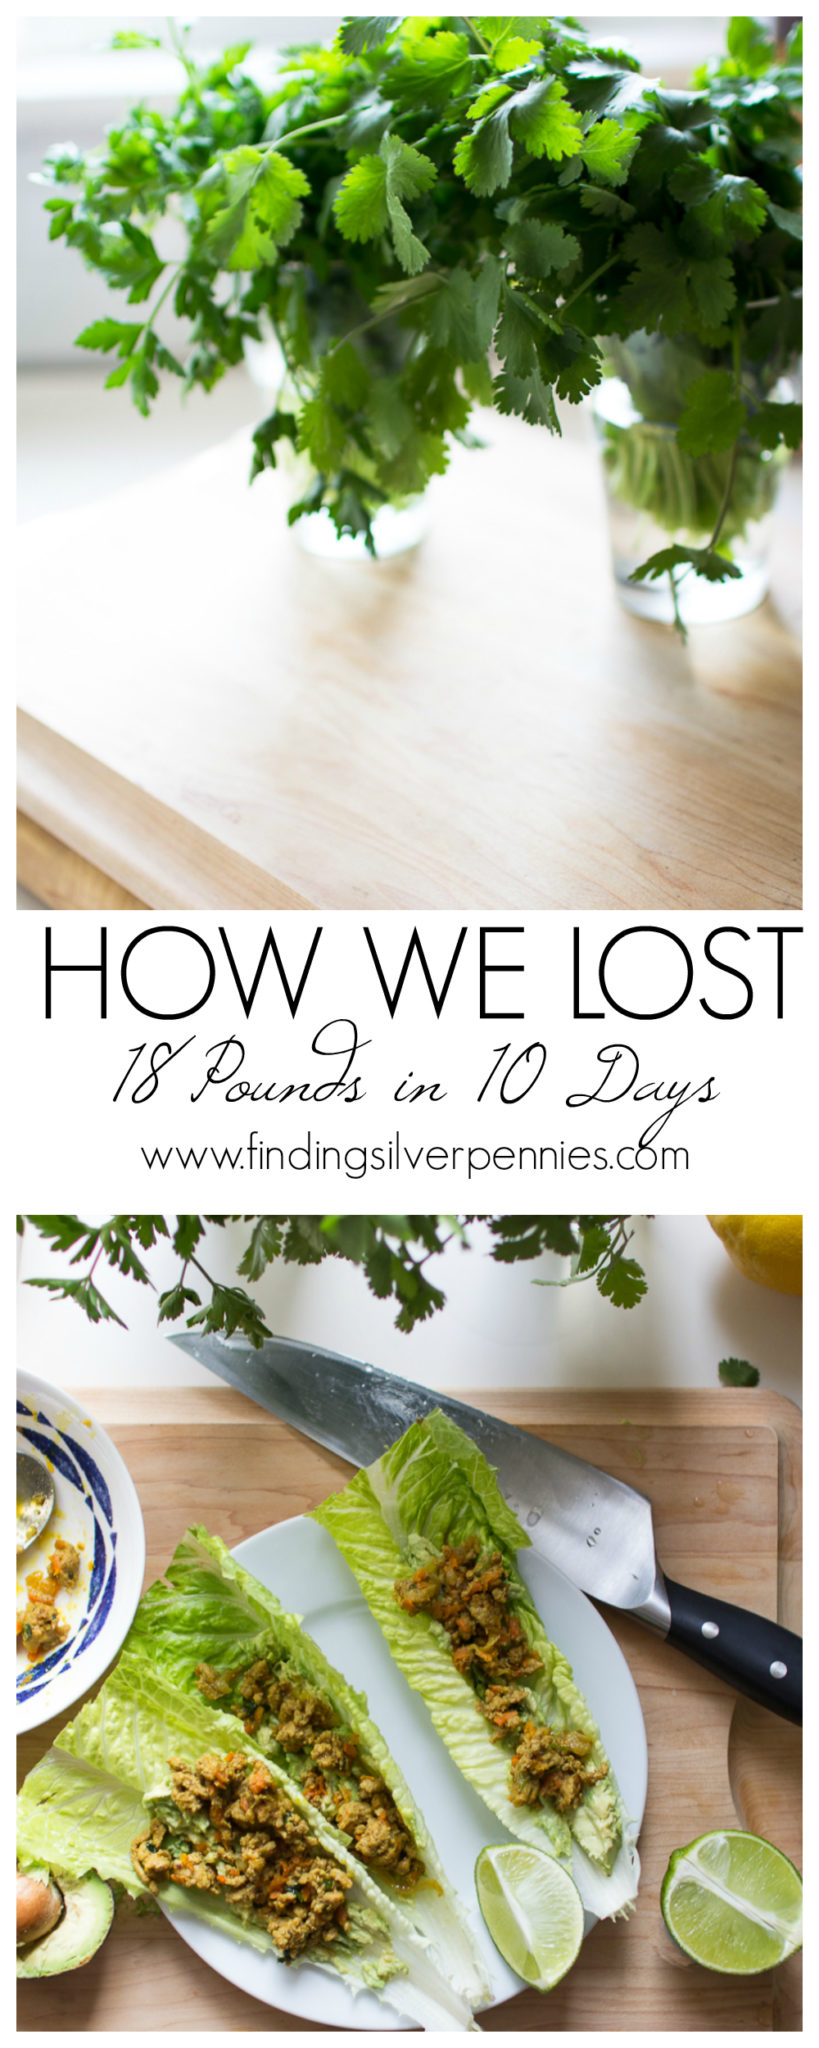 How We Lost 18 Pounds in 10 Days I Our 10 Day Detox I Finding Silver Pennies